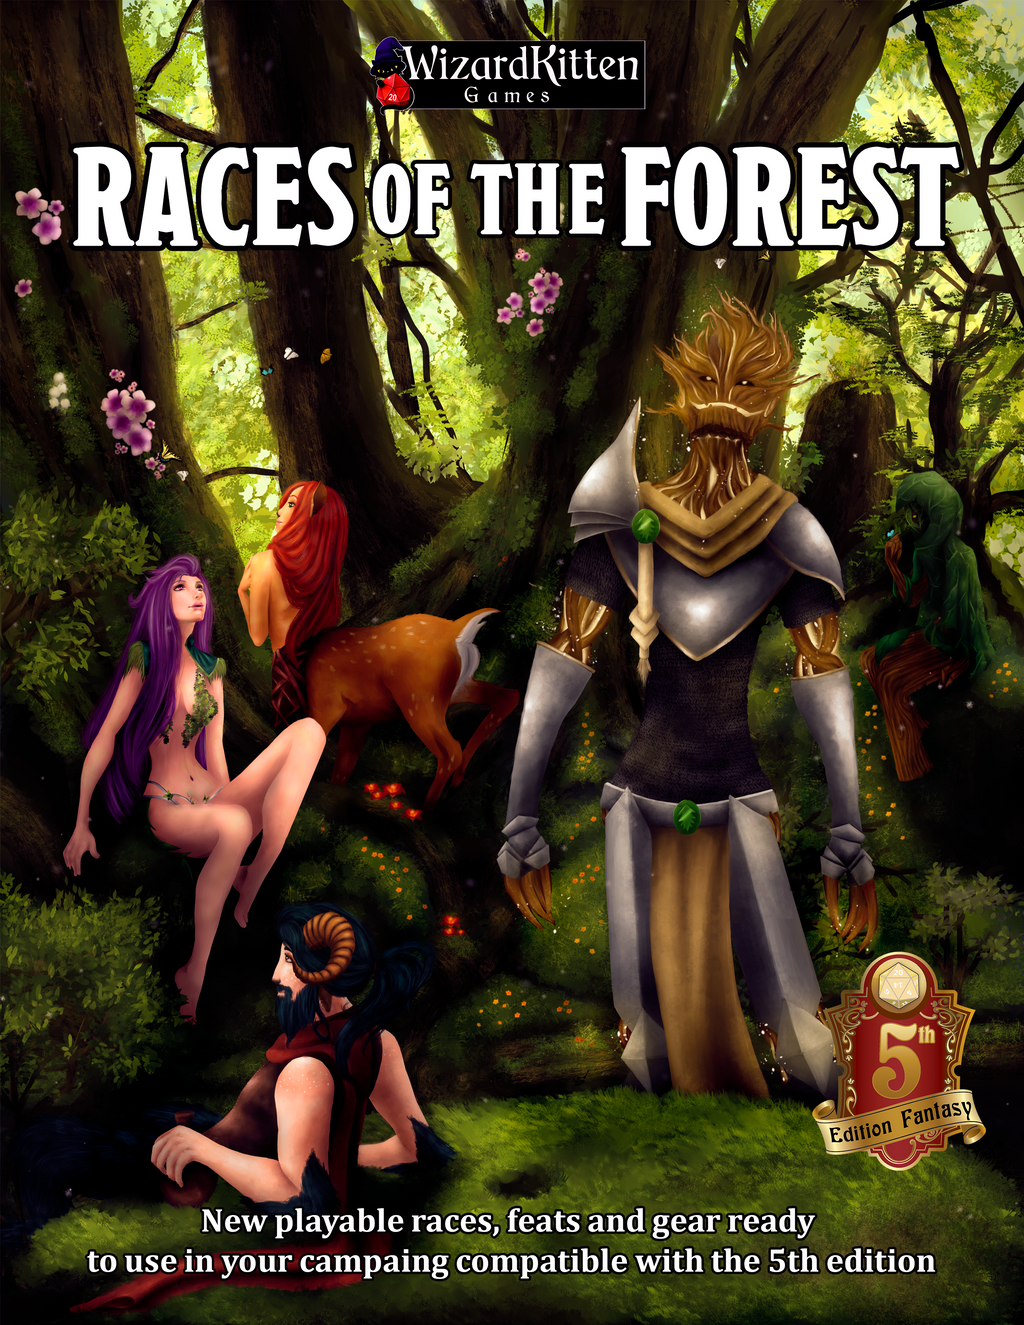 Races of the Forest Book